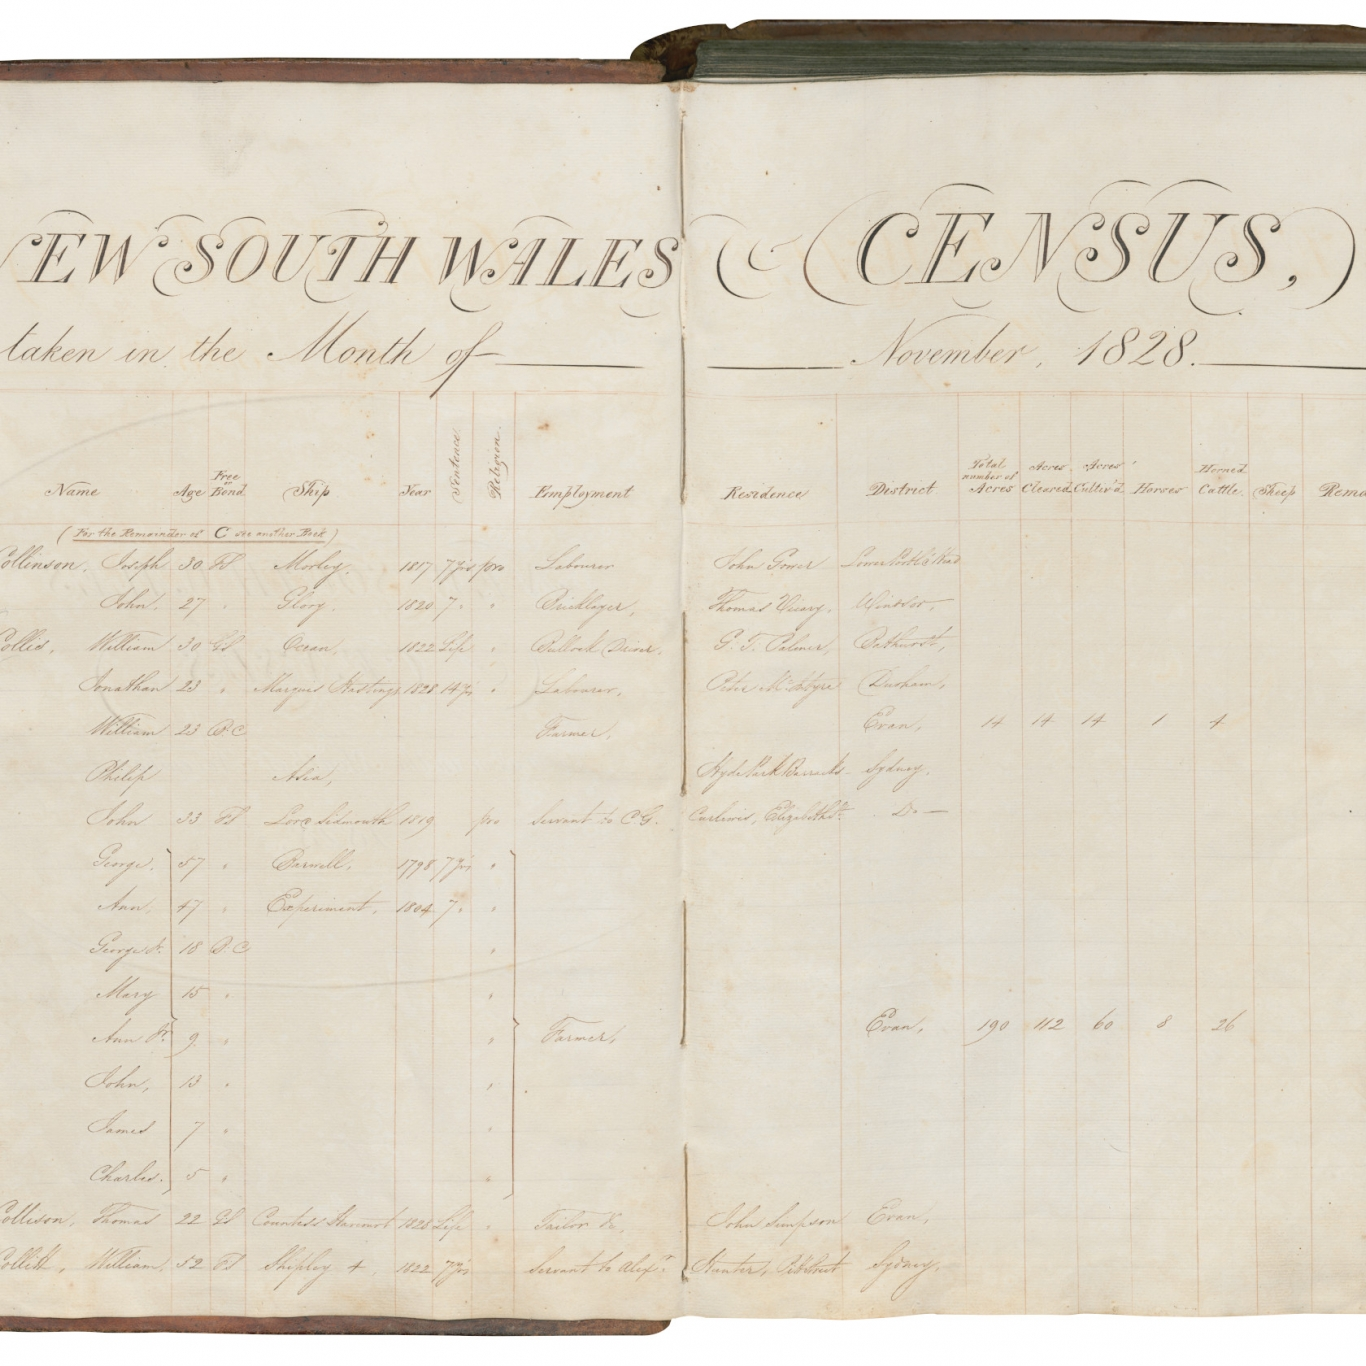 Ornately lettered two page spread of census document.